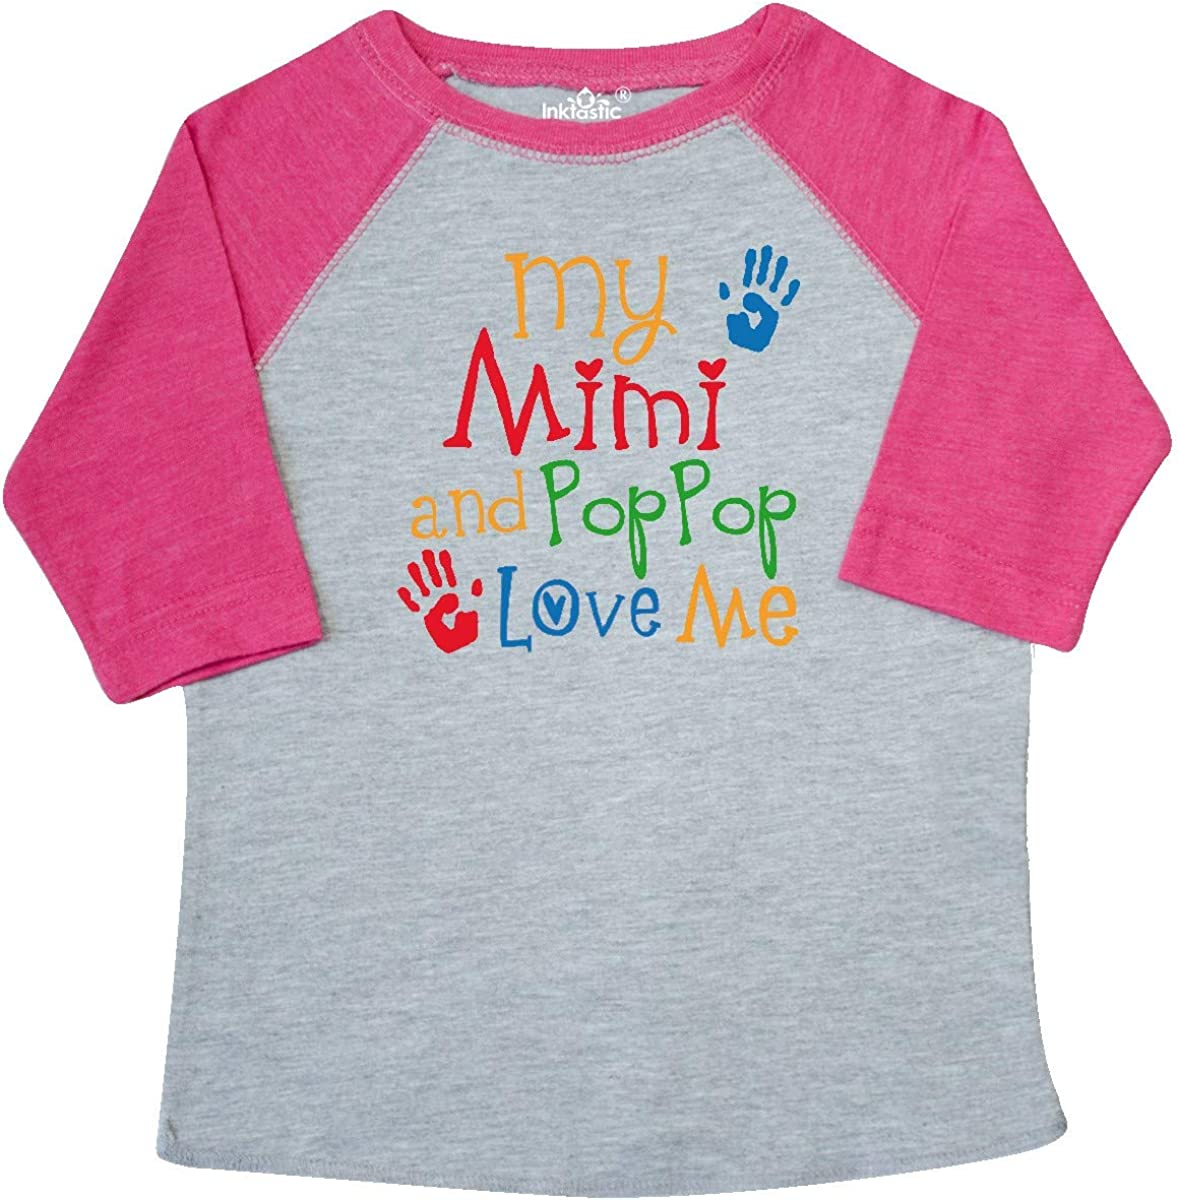 Inktastic Mimi And PopPop Love Me Toddler T-Shirt Gift Childs Boys Girls Outfit